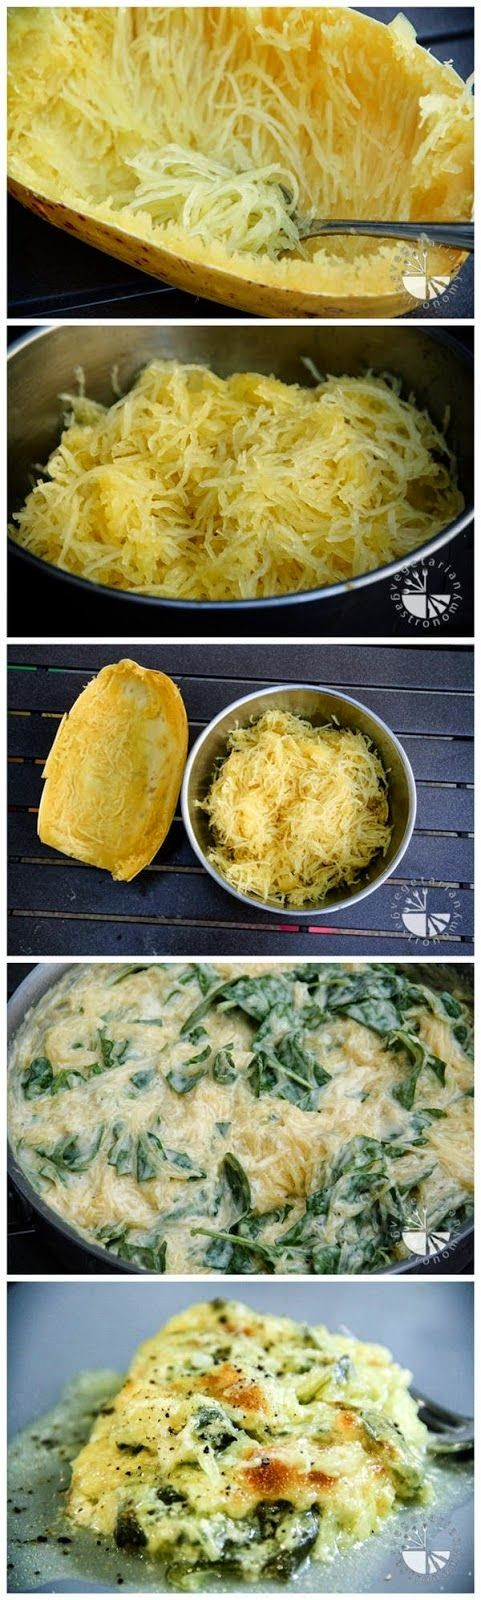 Baked Spaghetti Squash with Cheddar Cheese & Spinach #lowcarb #casserole #fiber